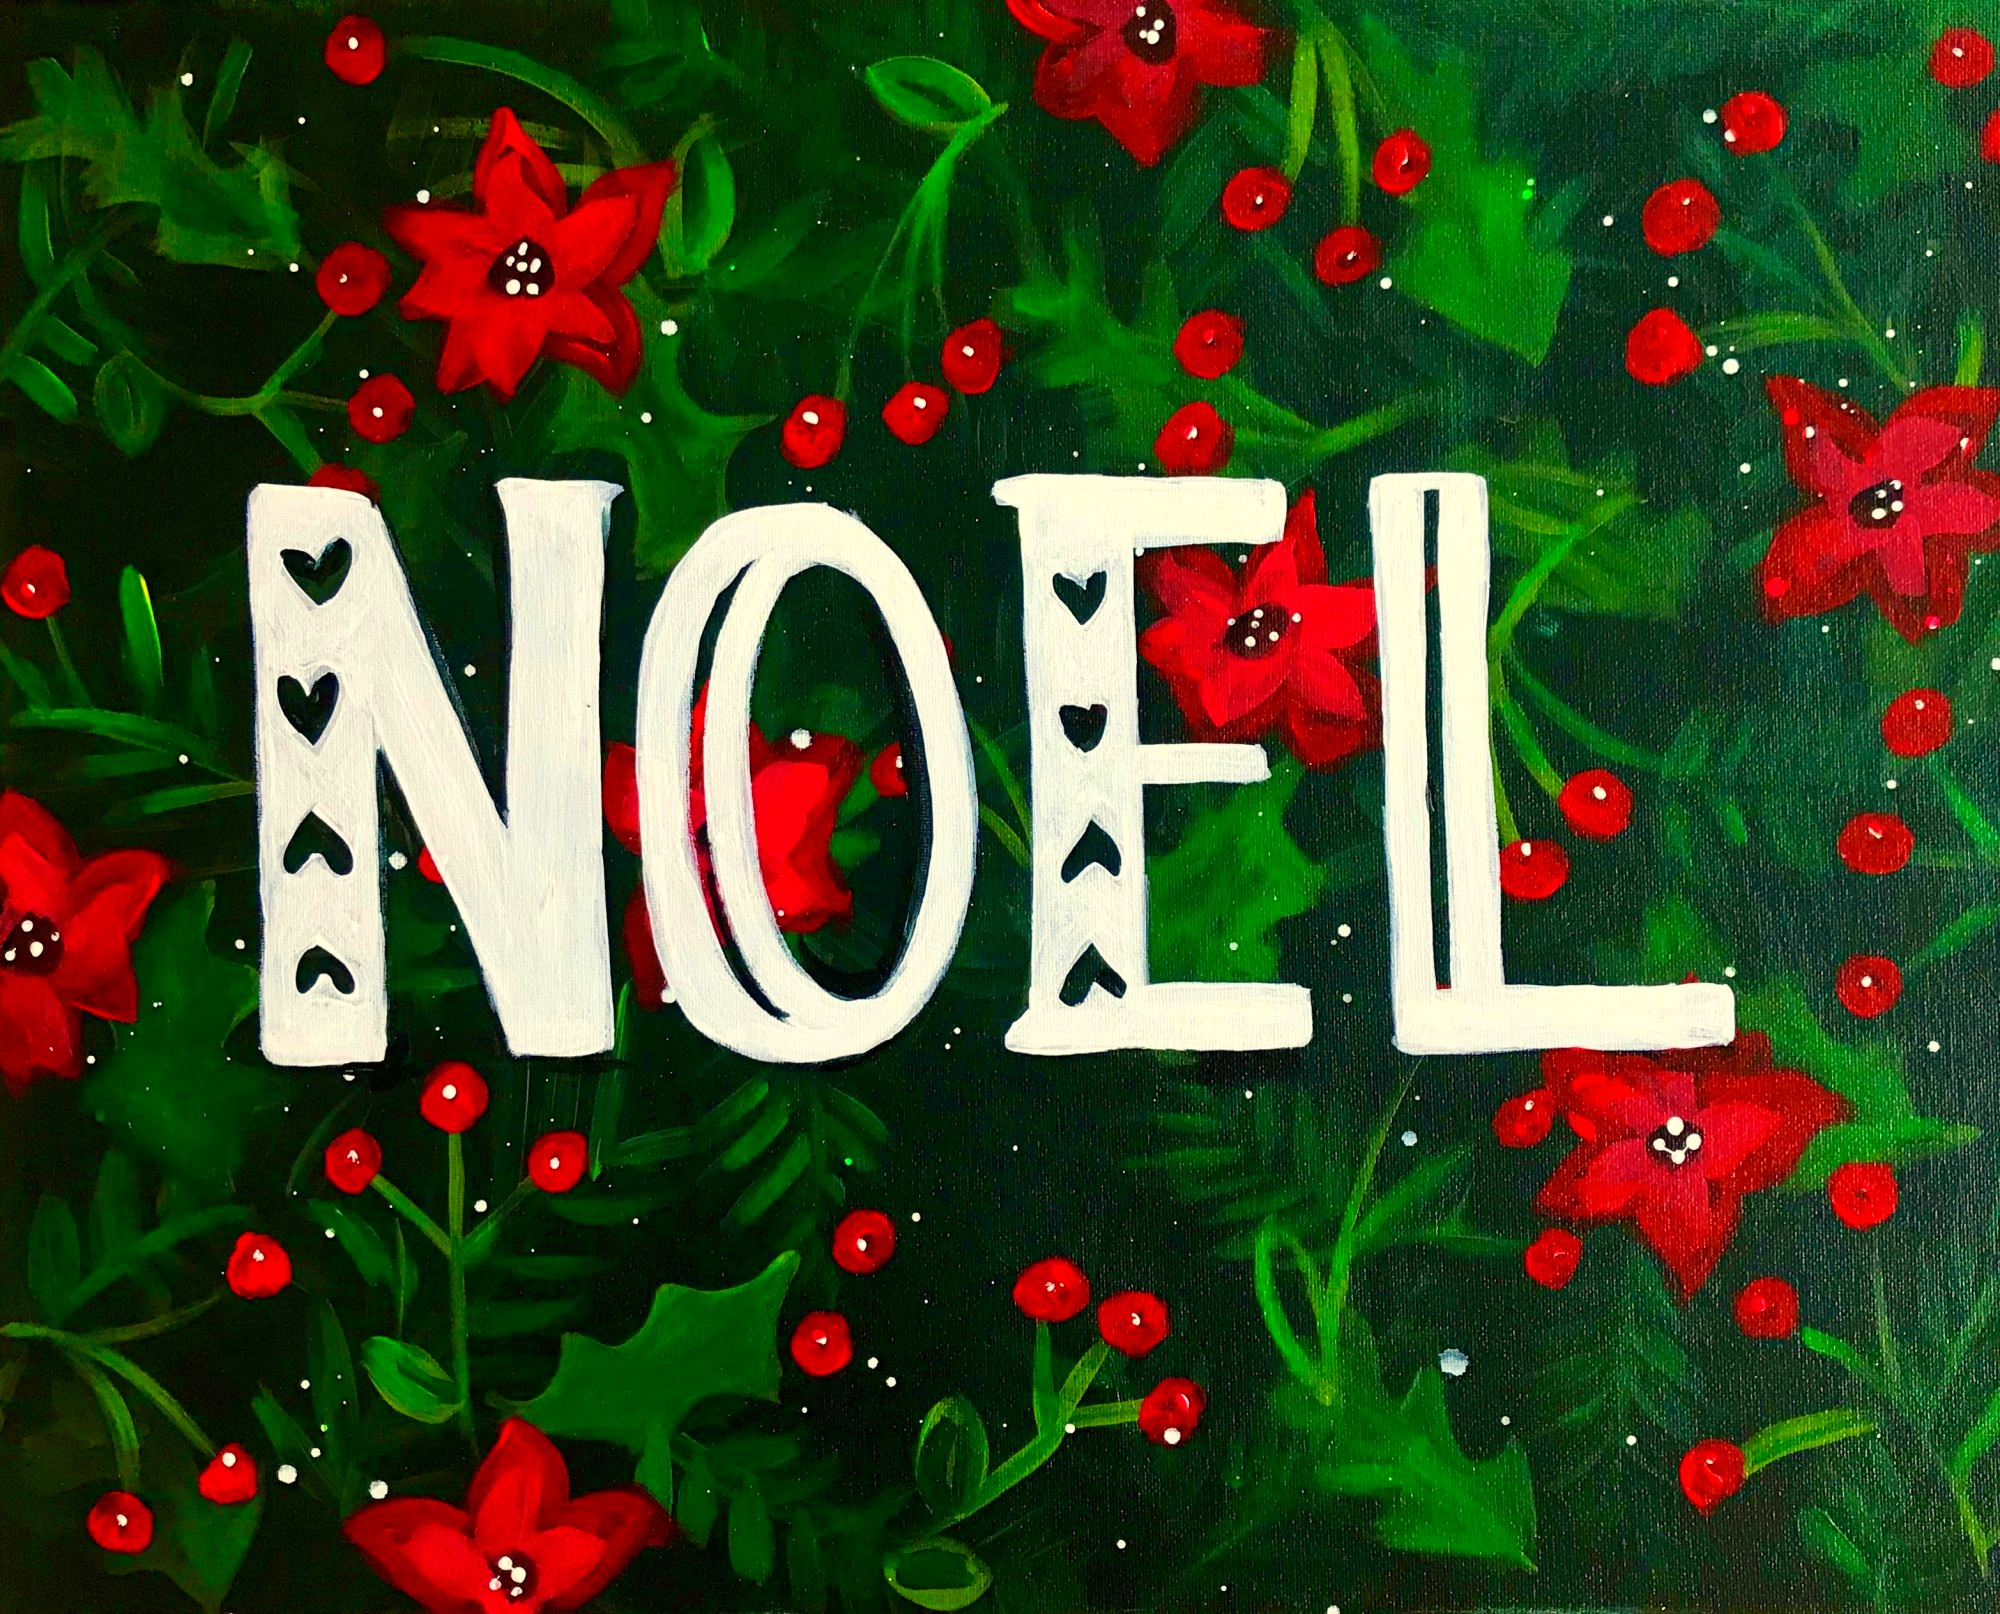 Customized Holiday Floral Sign $35